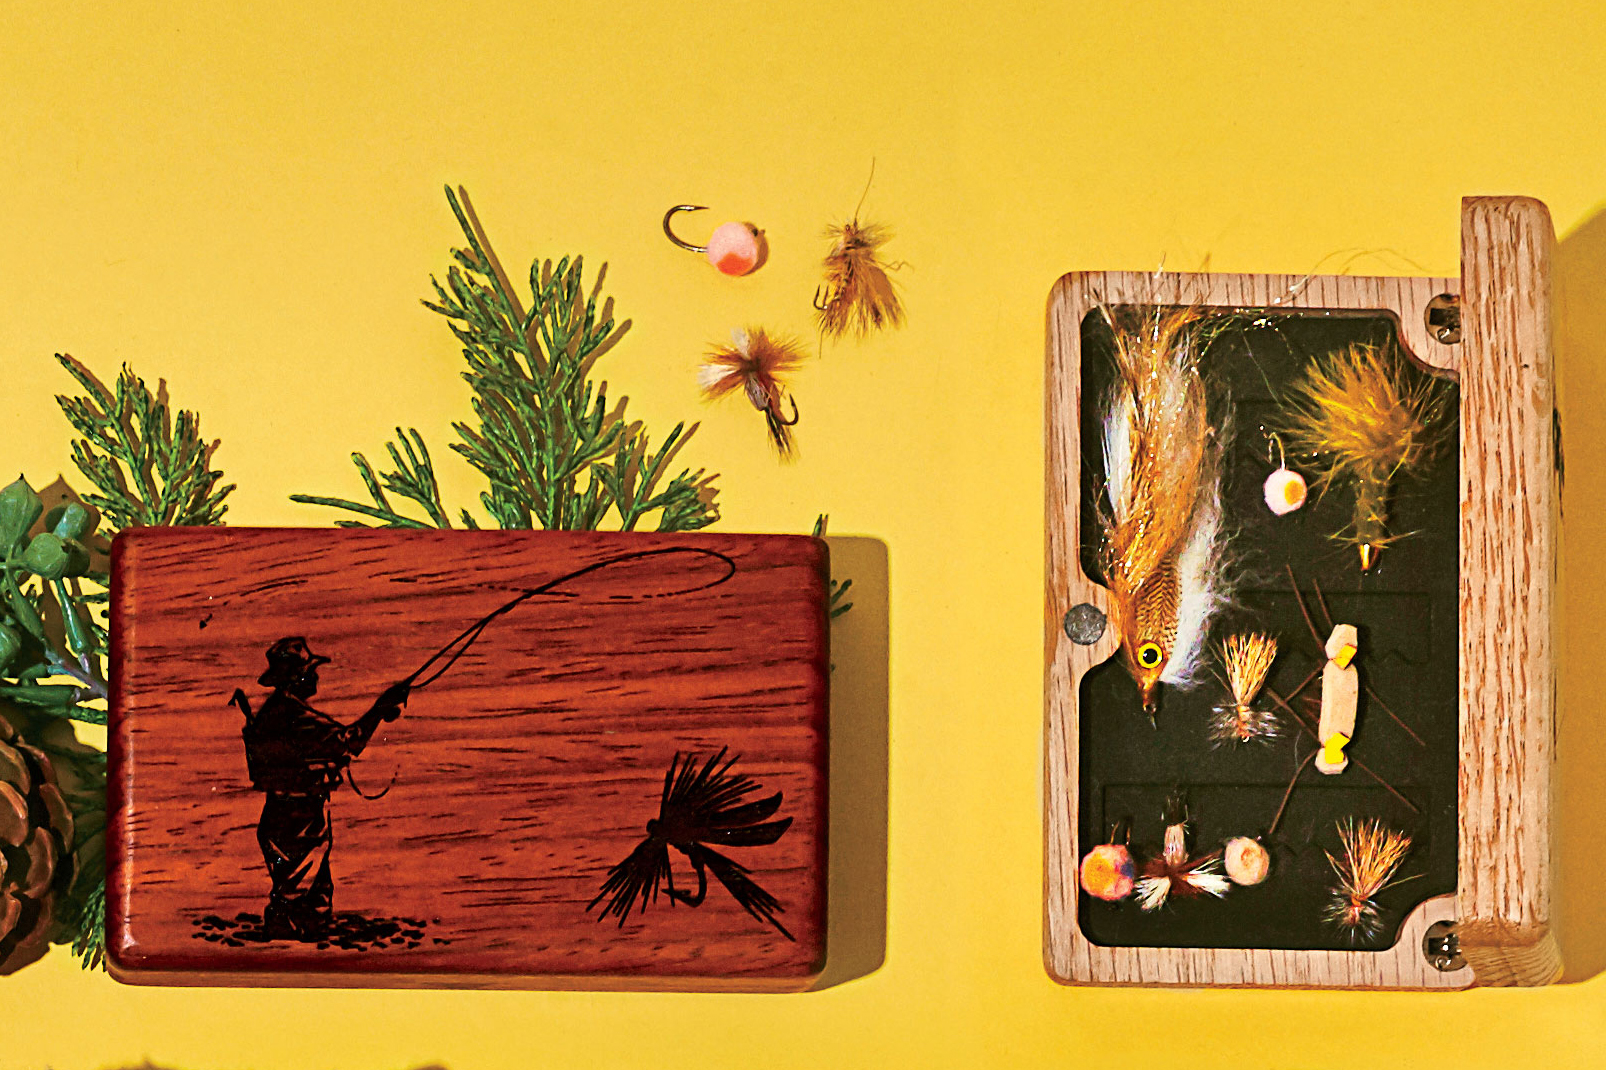 Cold Creek Creations Co. Fly Box